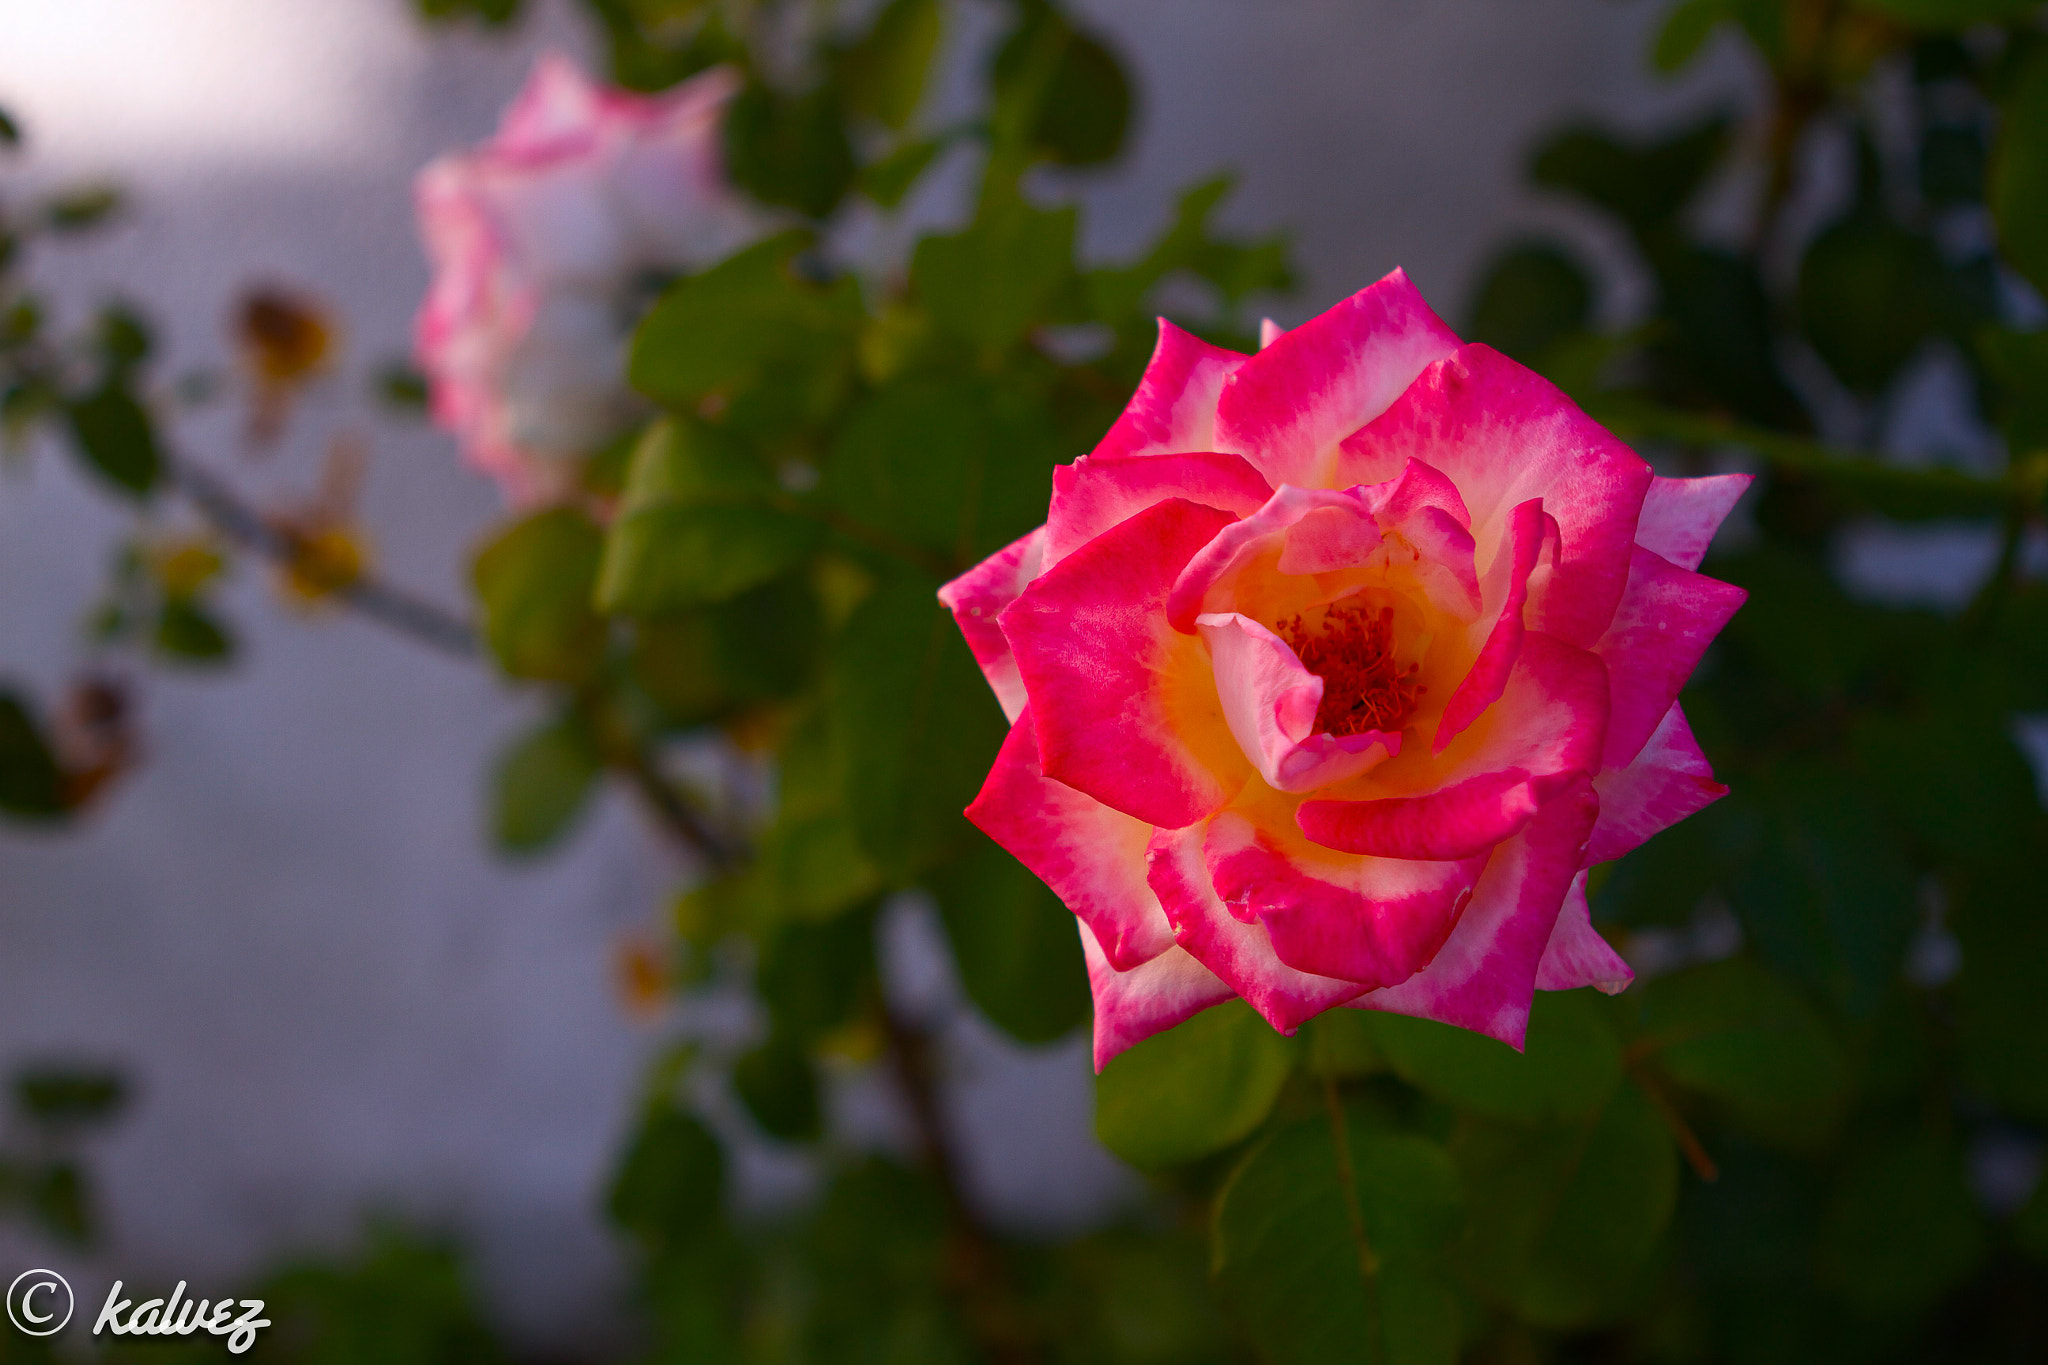 Photograph OTHER FLOWER by Carlos Alves on 500px